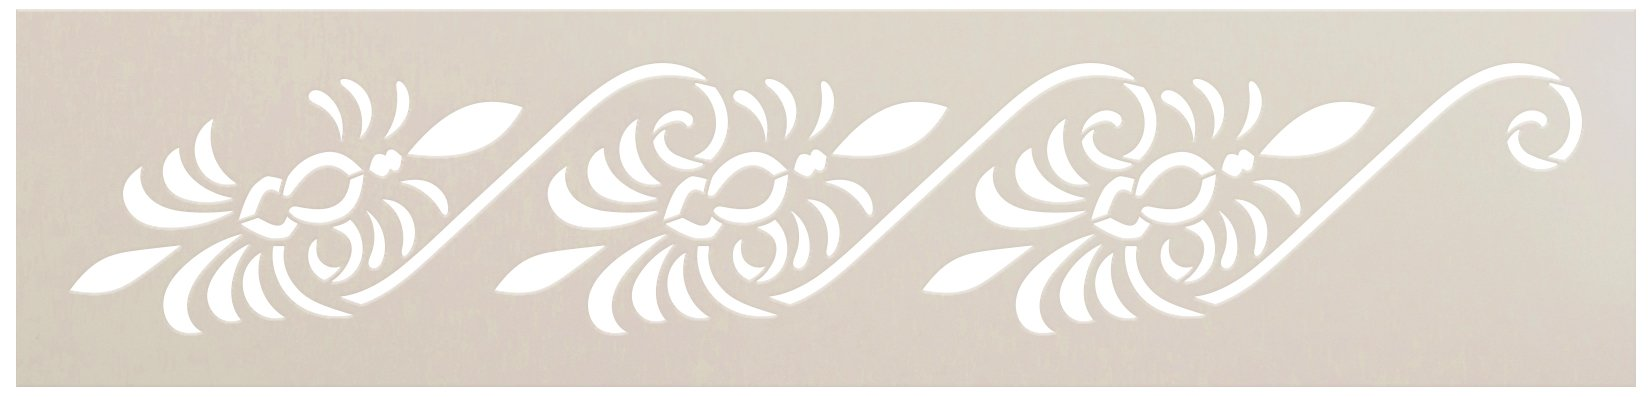 Floral Ornamental Border Stencil by StudioR12 | DIY Greek Seamless Pattern Home Decor | Craft & Paint Wood Sign Reusable Mylar Template | Select Size